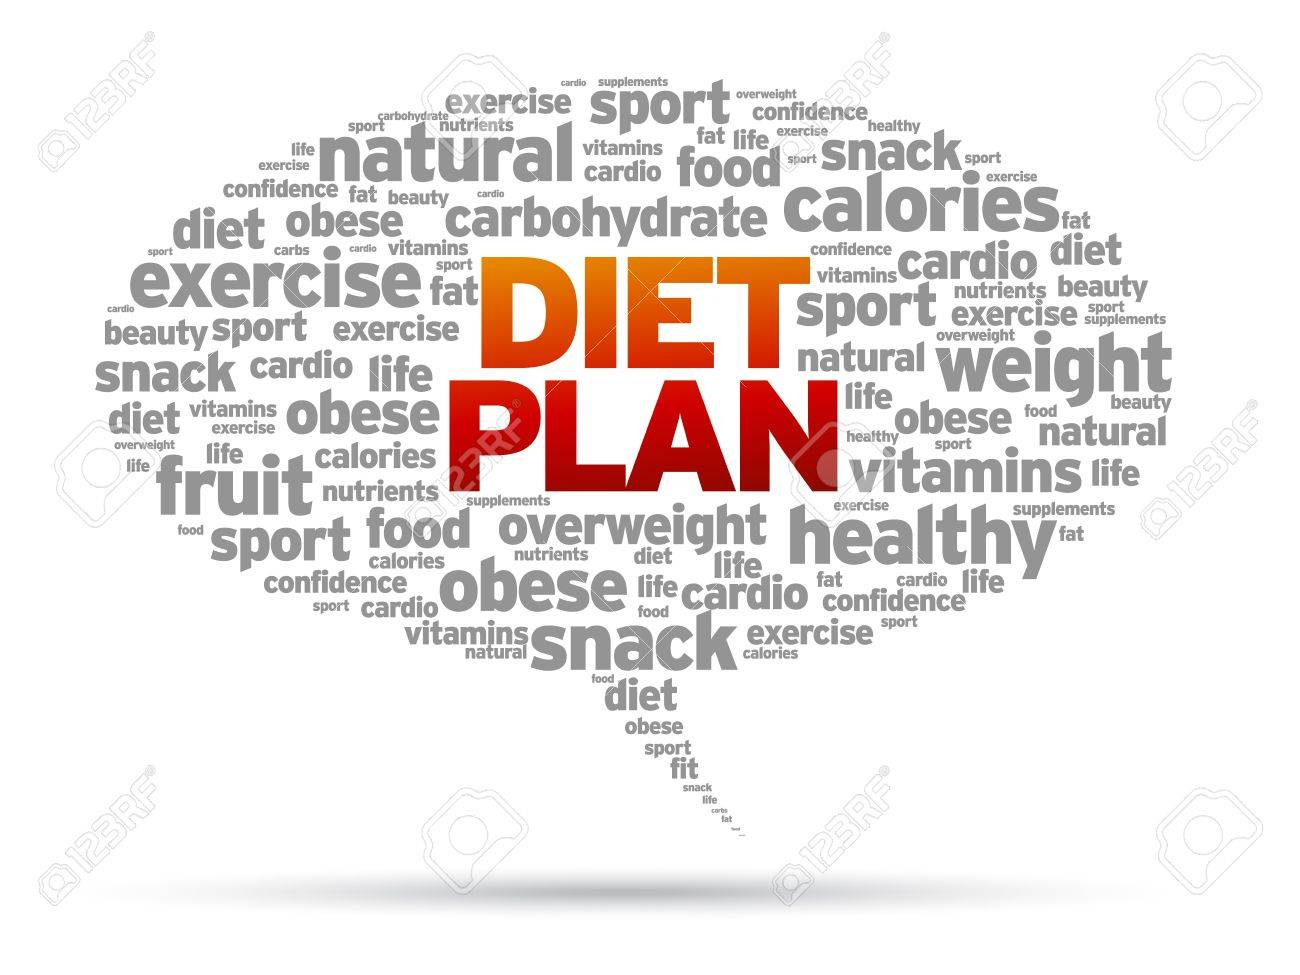 Diet plan for healthy life - Diet Plan Word Speech Bubble Illustration On White Background Stock Vector 14841140